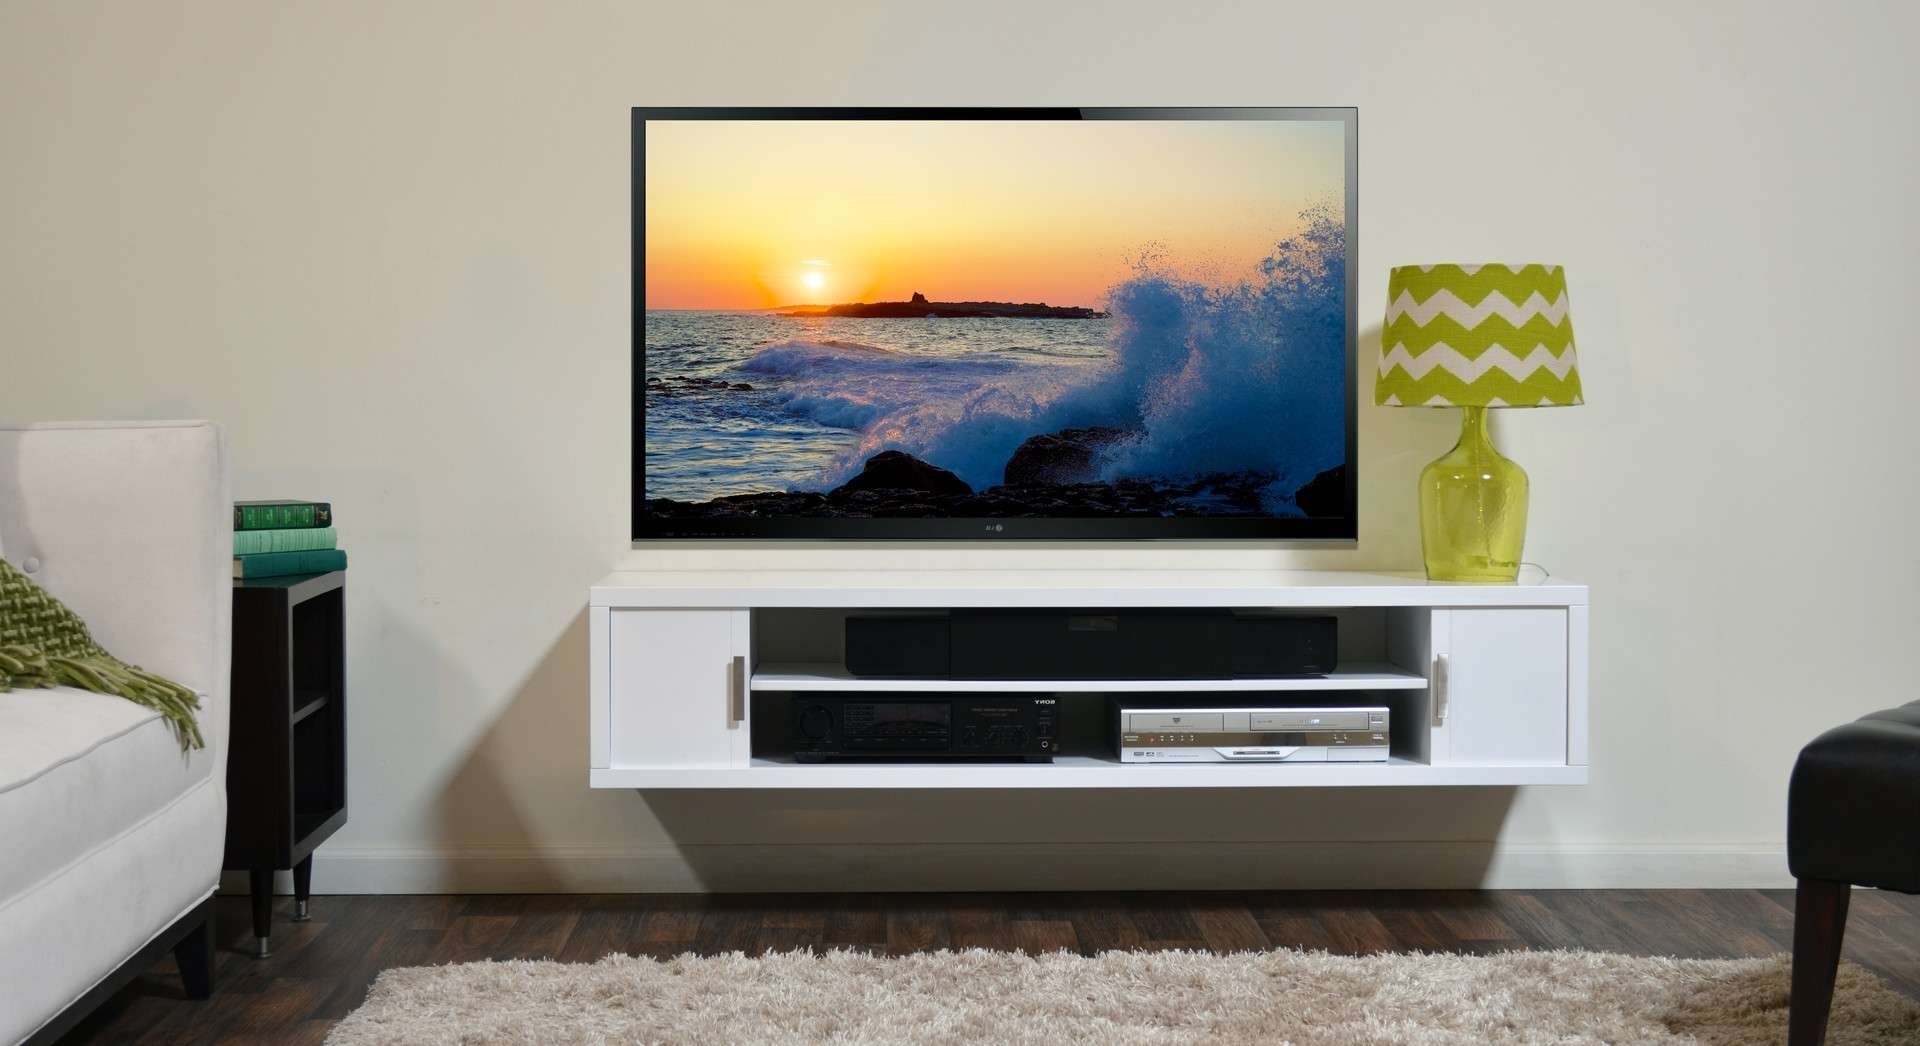 Wall Mount Tv Stands – Home Designing Throughout Wall Mounted Tv Stands For Flat Screens (View 9 of 15)